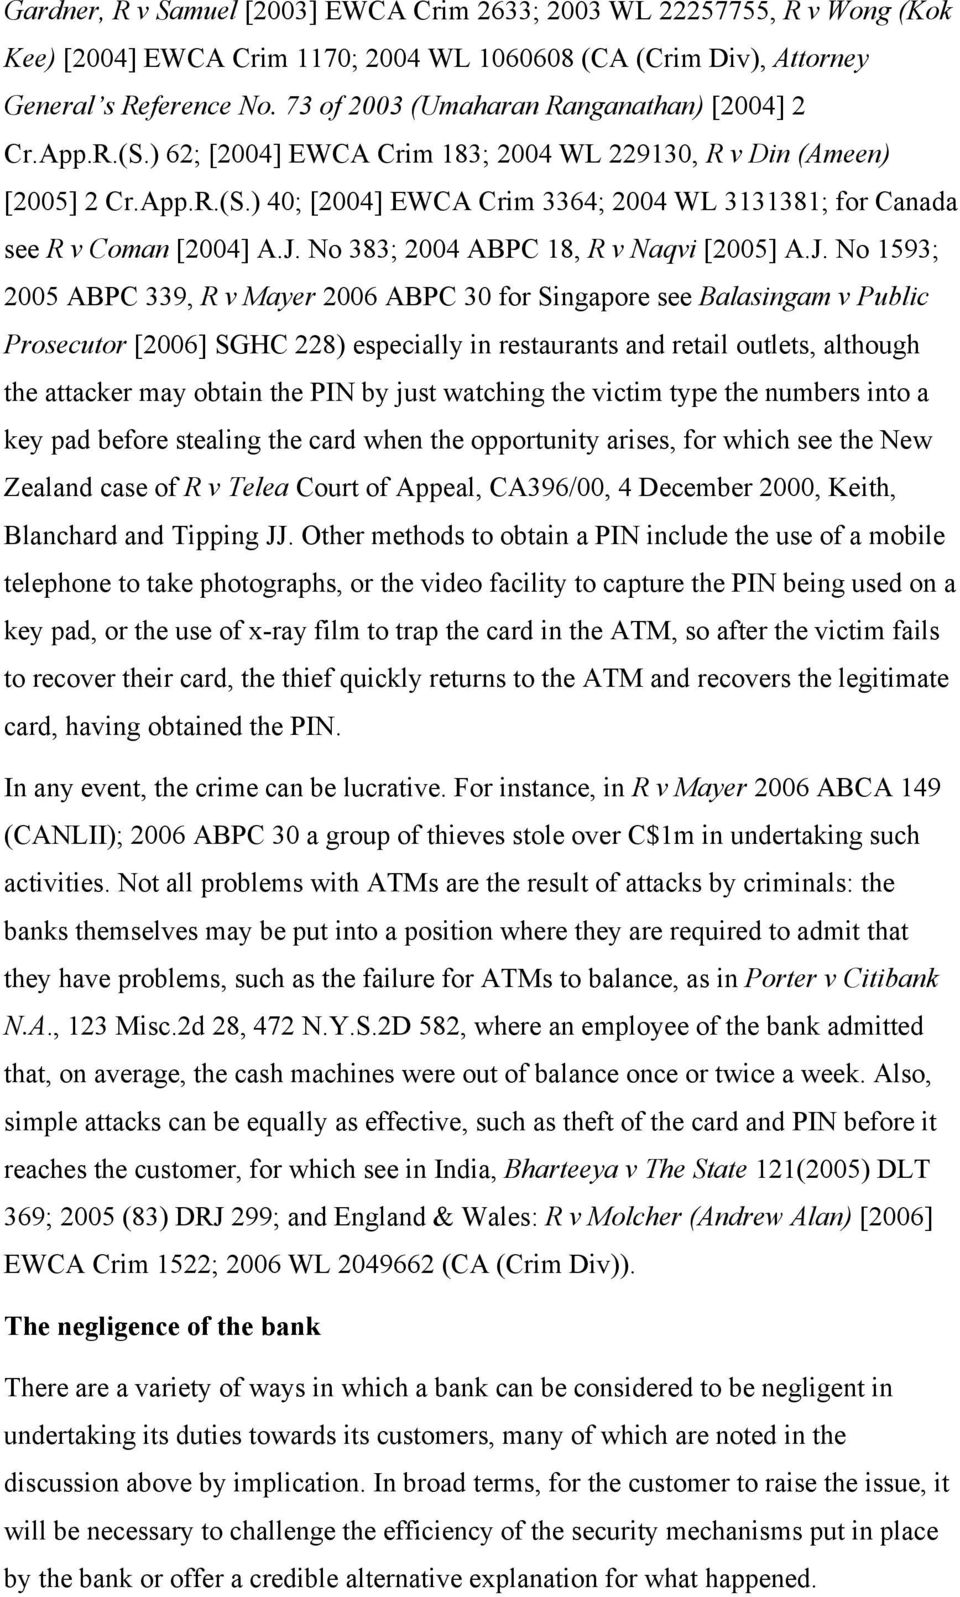 J. No 383; 2004 ABPC 18, R v Naqvi [2005] A.J. No 1593; 2005 ABPC 339, R v Mayer 2006 ABPC 30 for Singapore see Balasingam v Public Prosecutor [2006] SGHC 228) especially in restaurants and retail